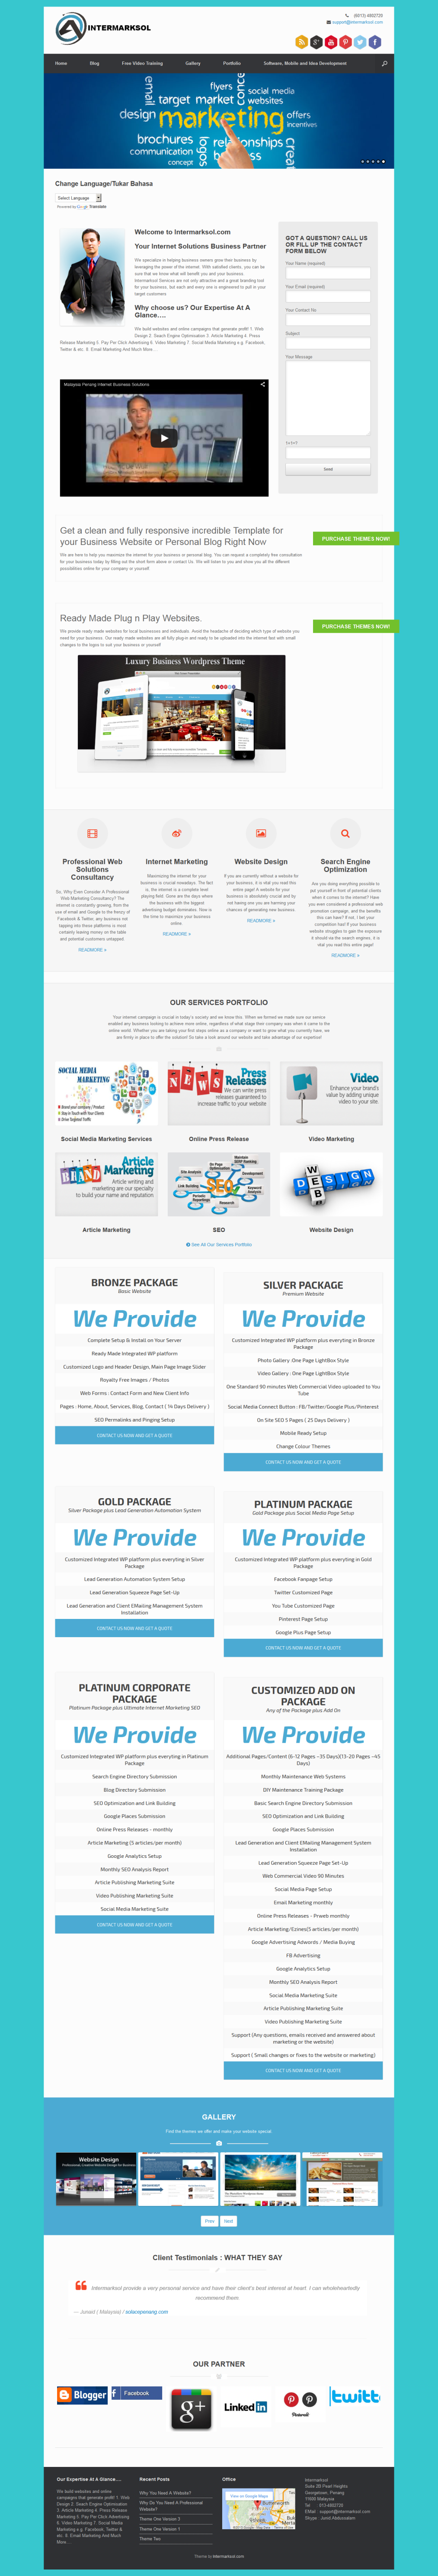 Intermarksol - Your Internet Marketing Solutions Partner 2015-02-06 09-46-35